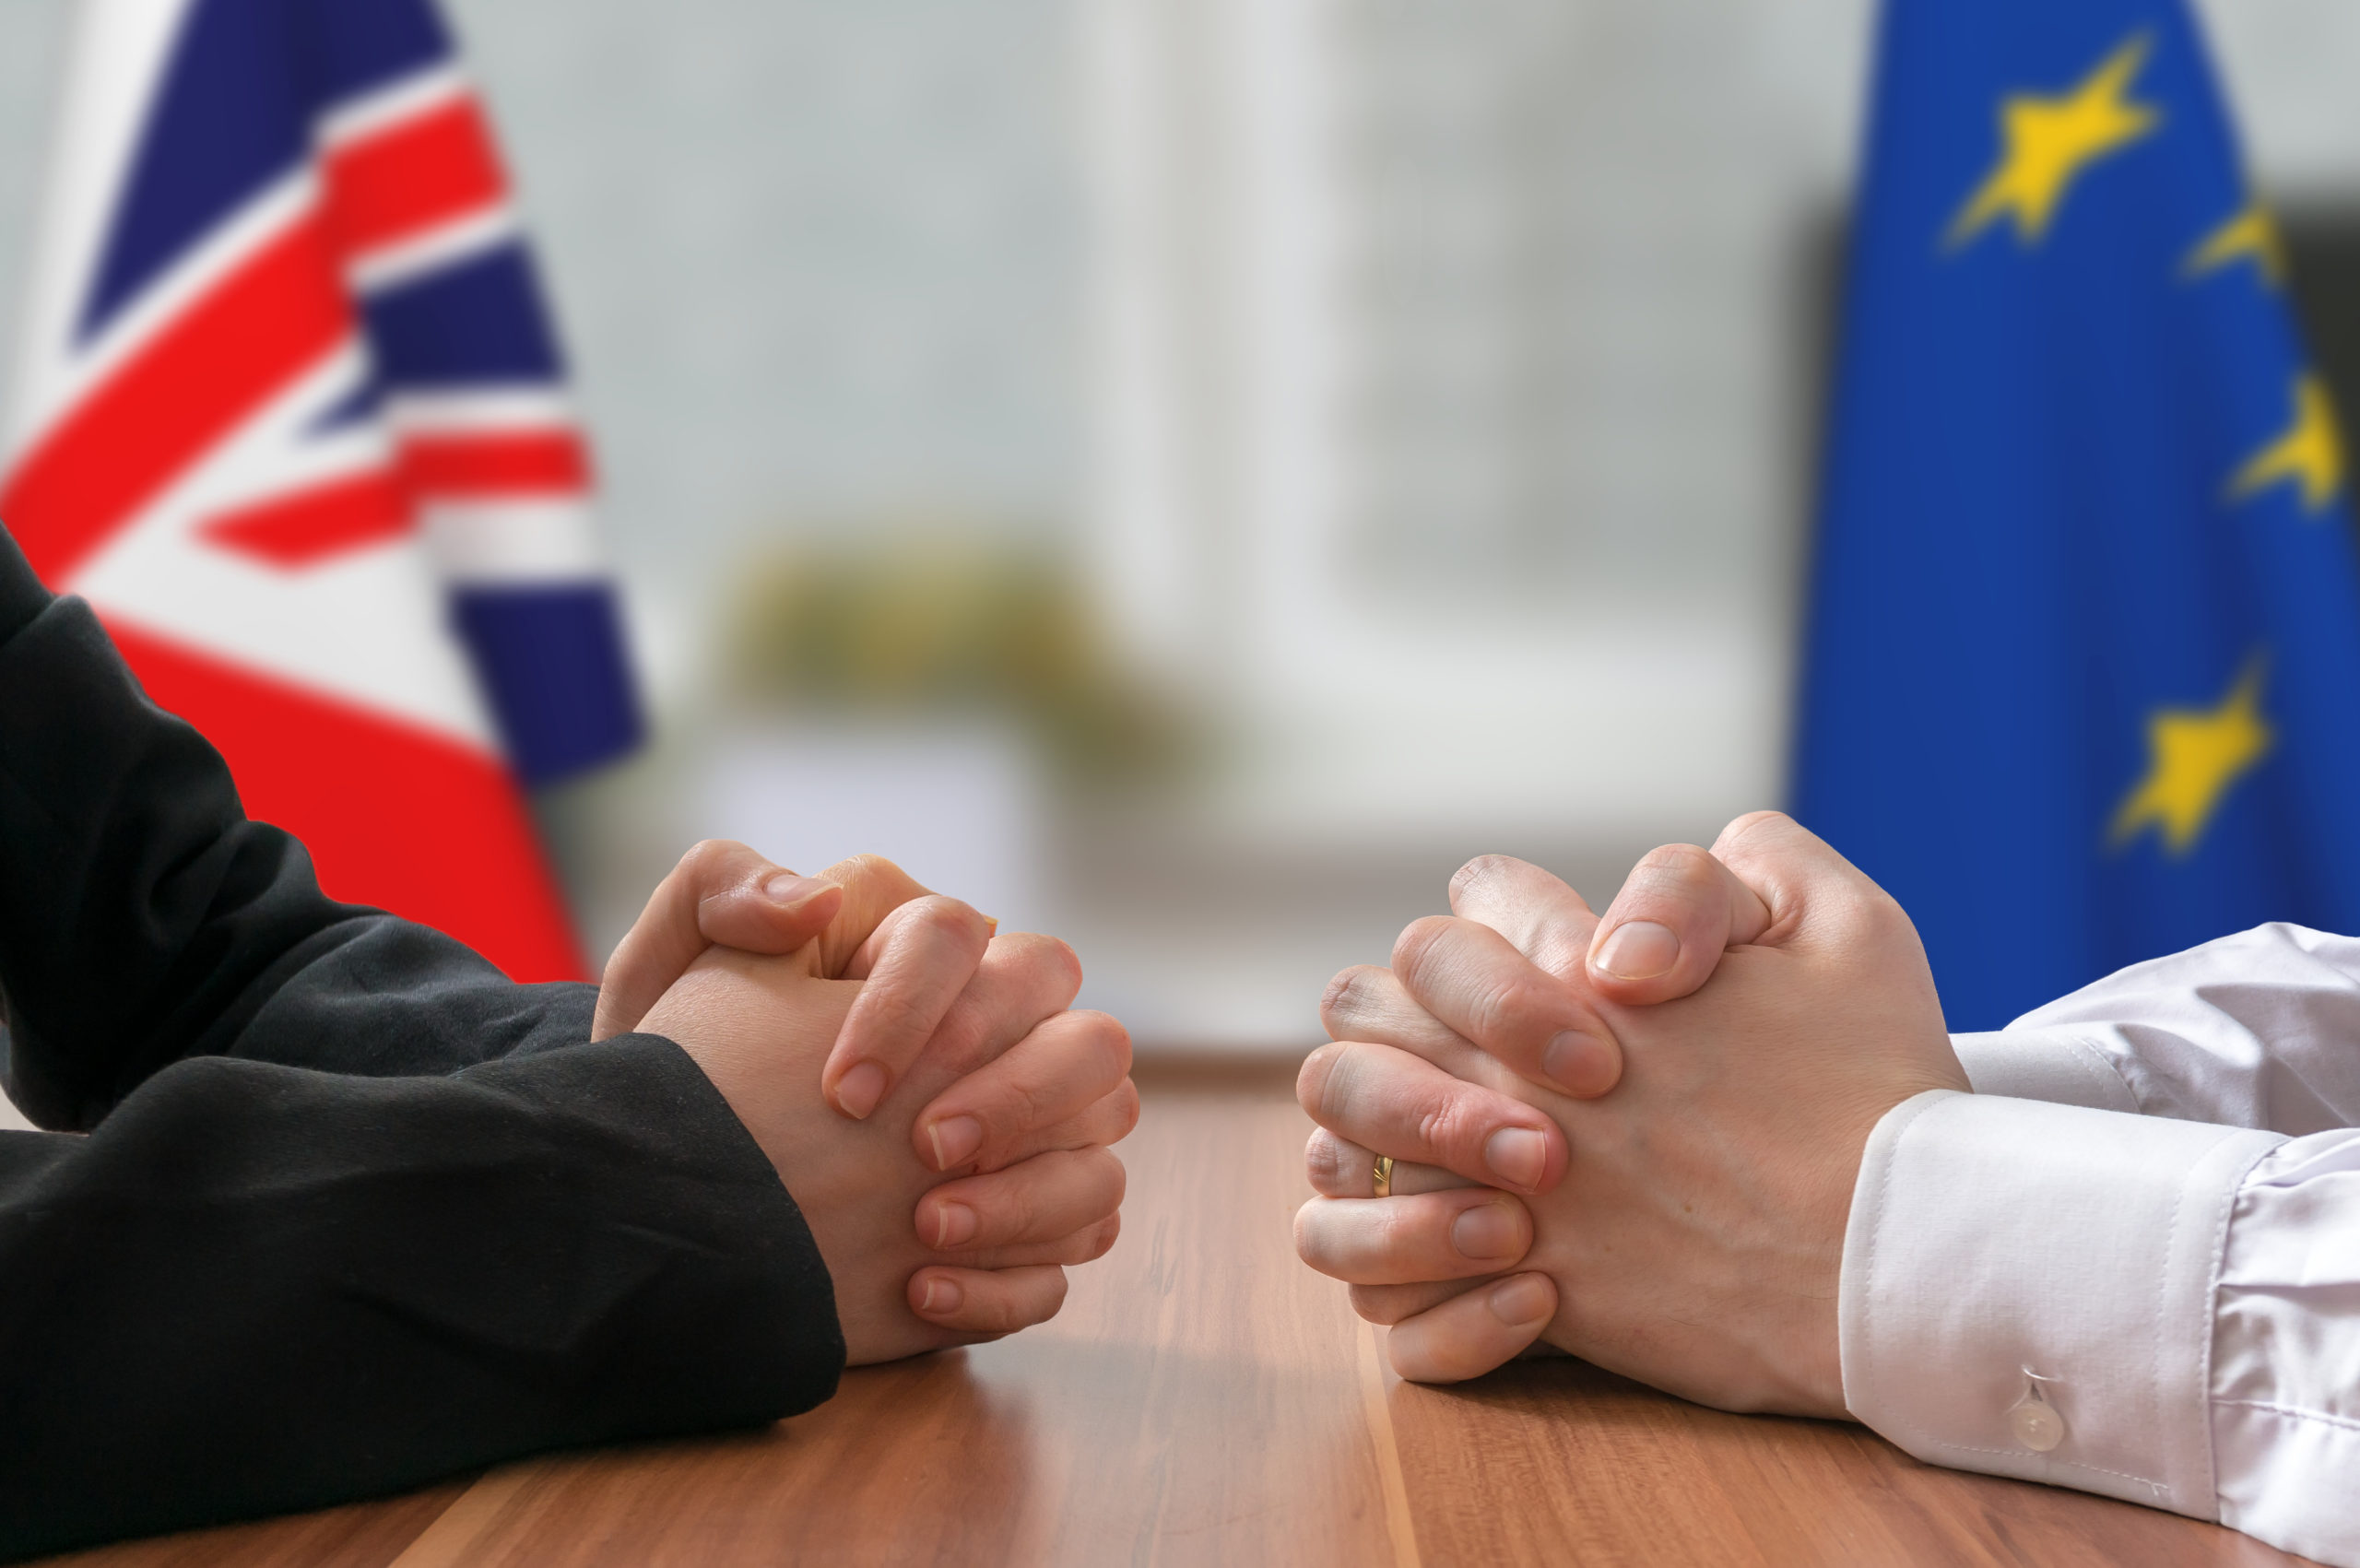 For or against Brexit?